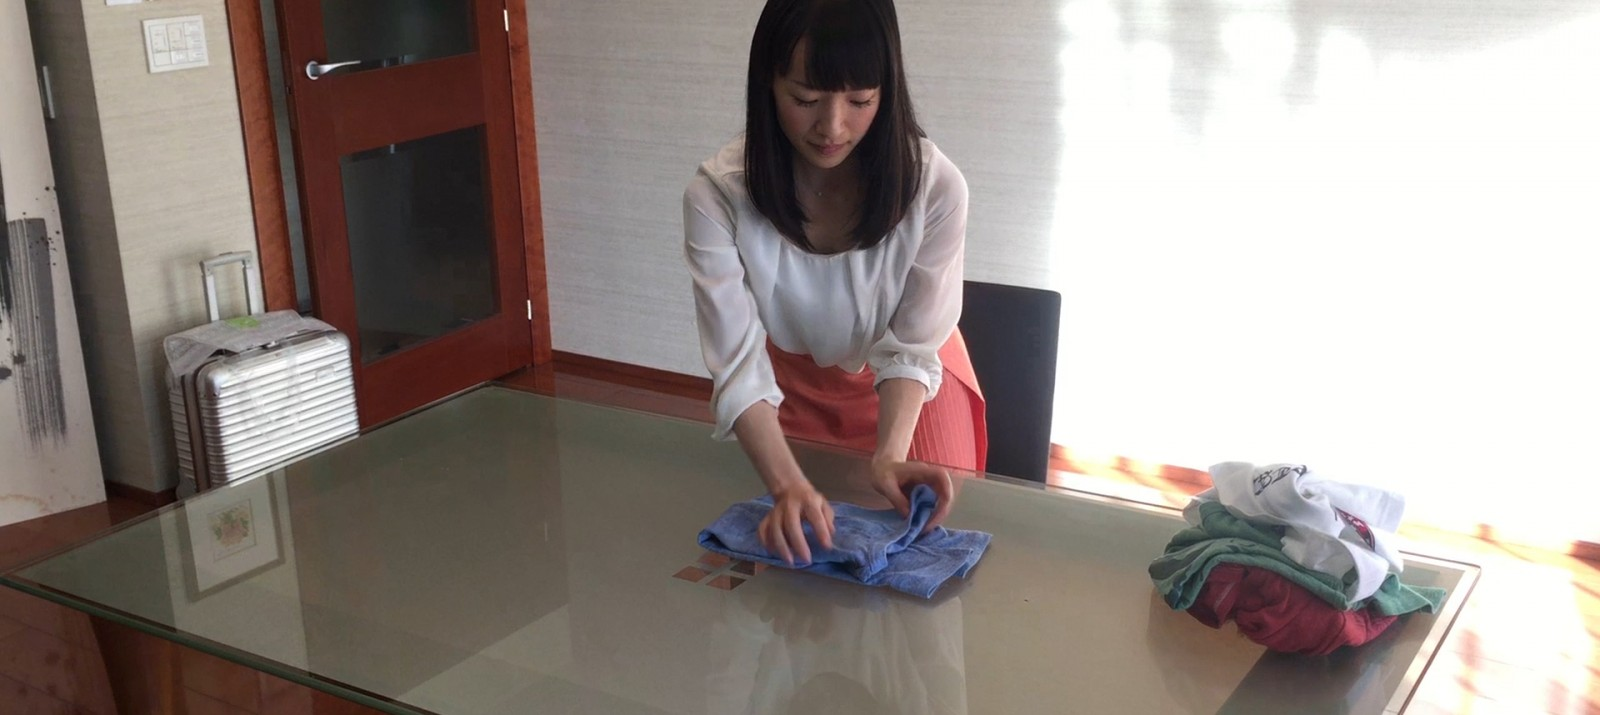 Marie Kondo shows how to fold a shirt the KonMari way.